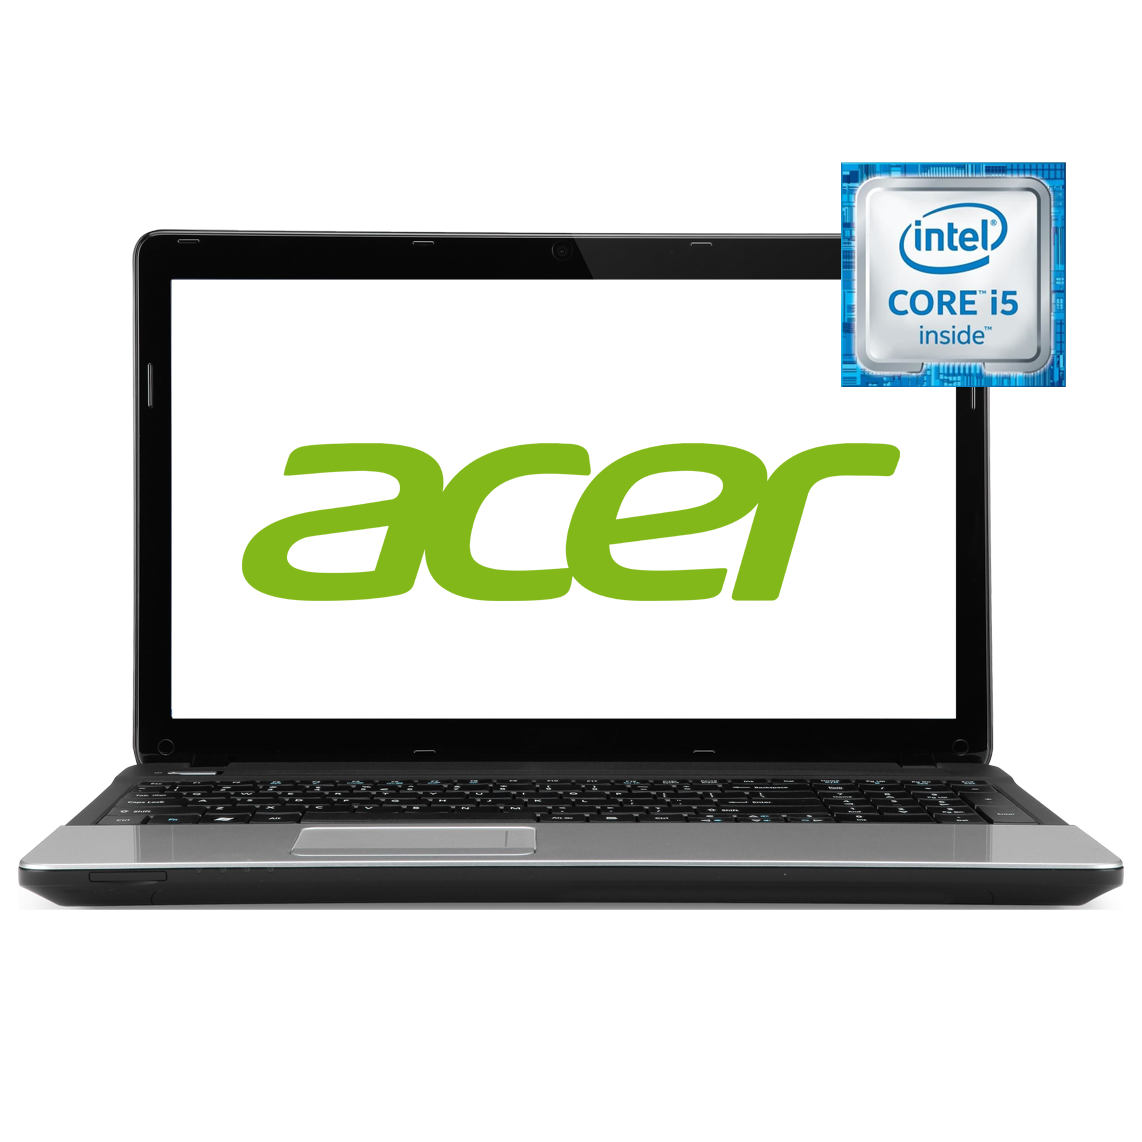 Acer - 17.3 inch Core i5 4th Gen